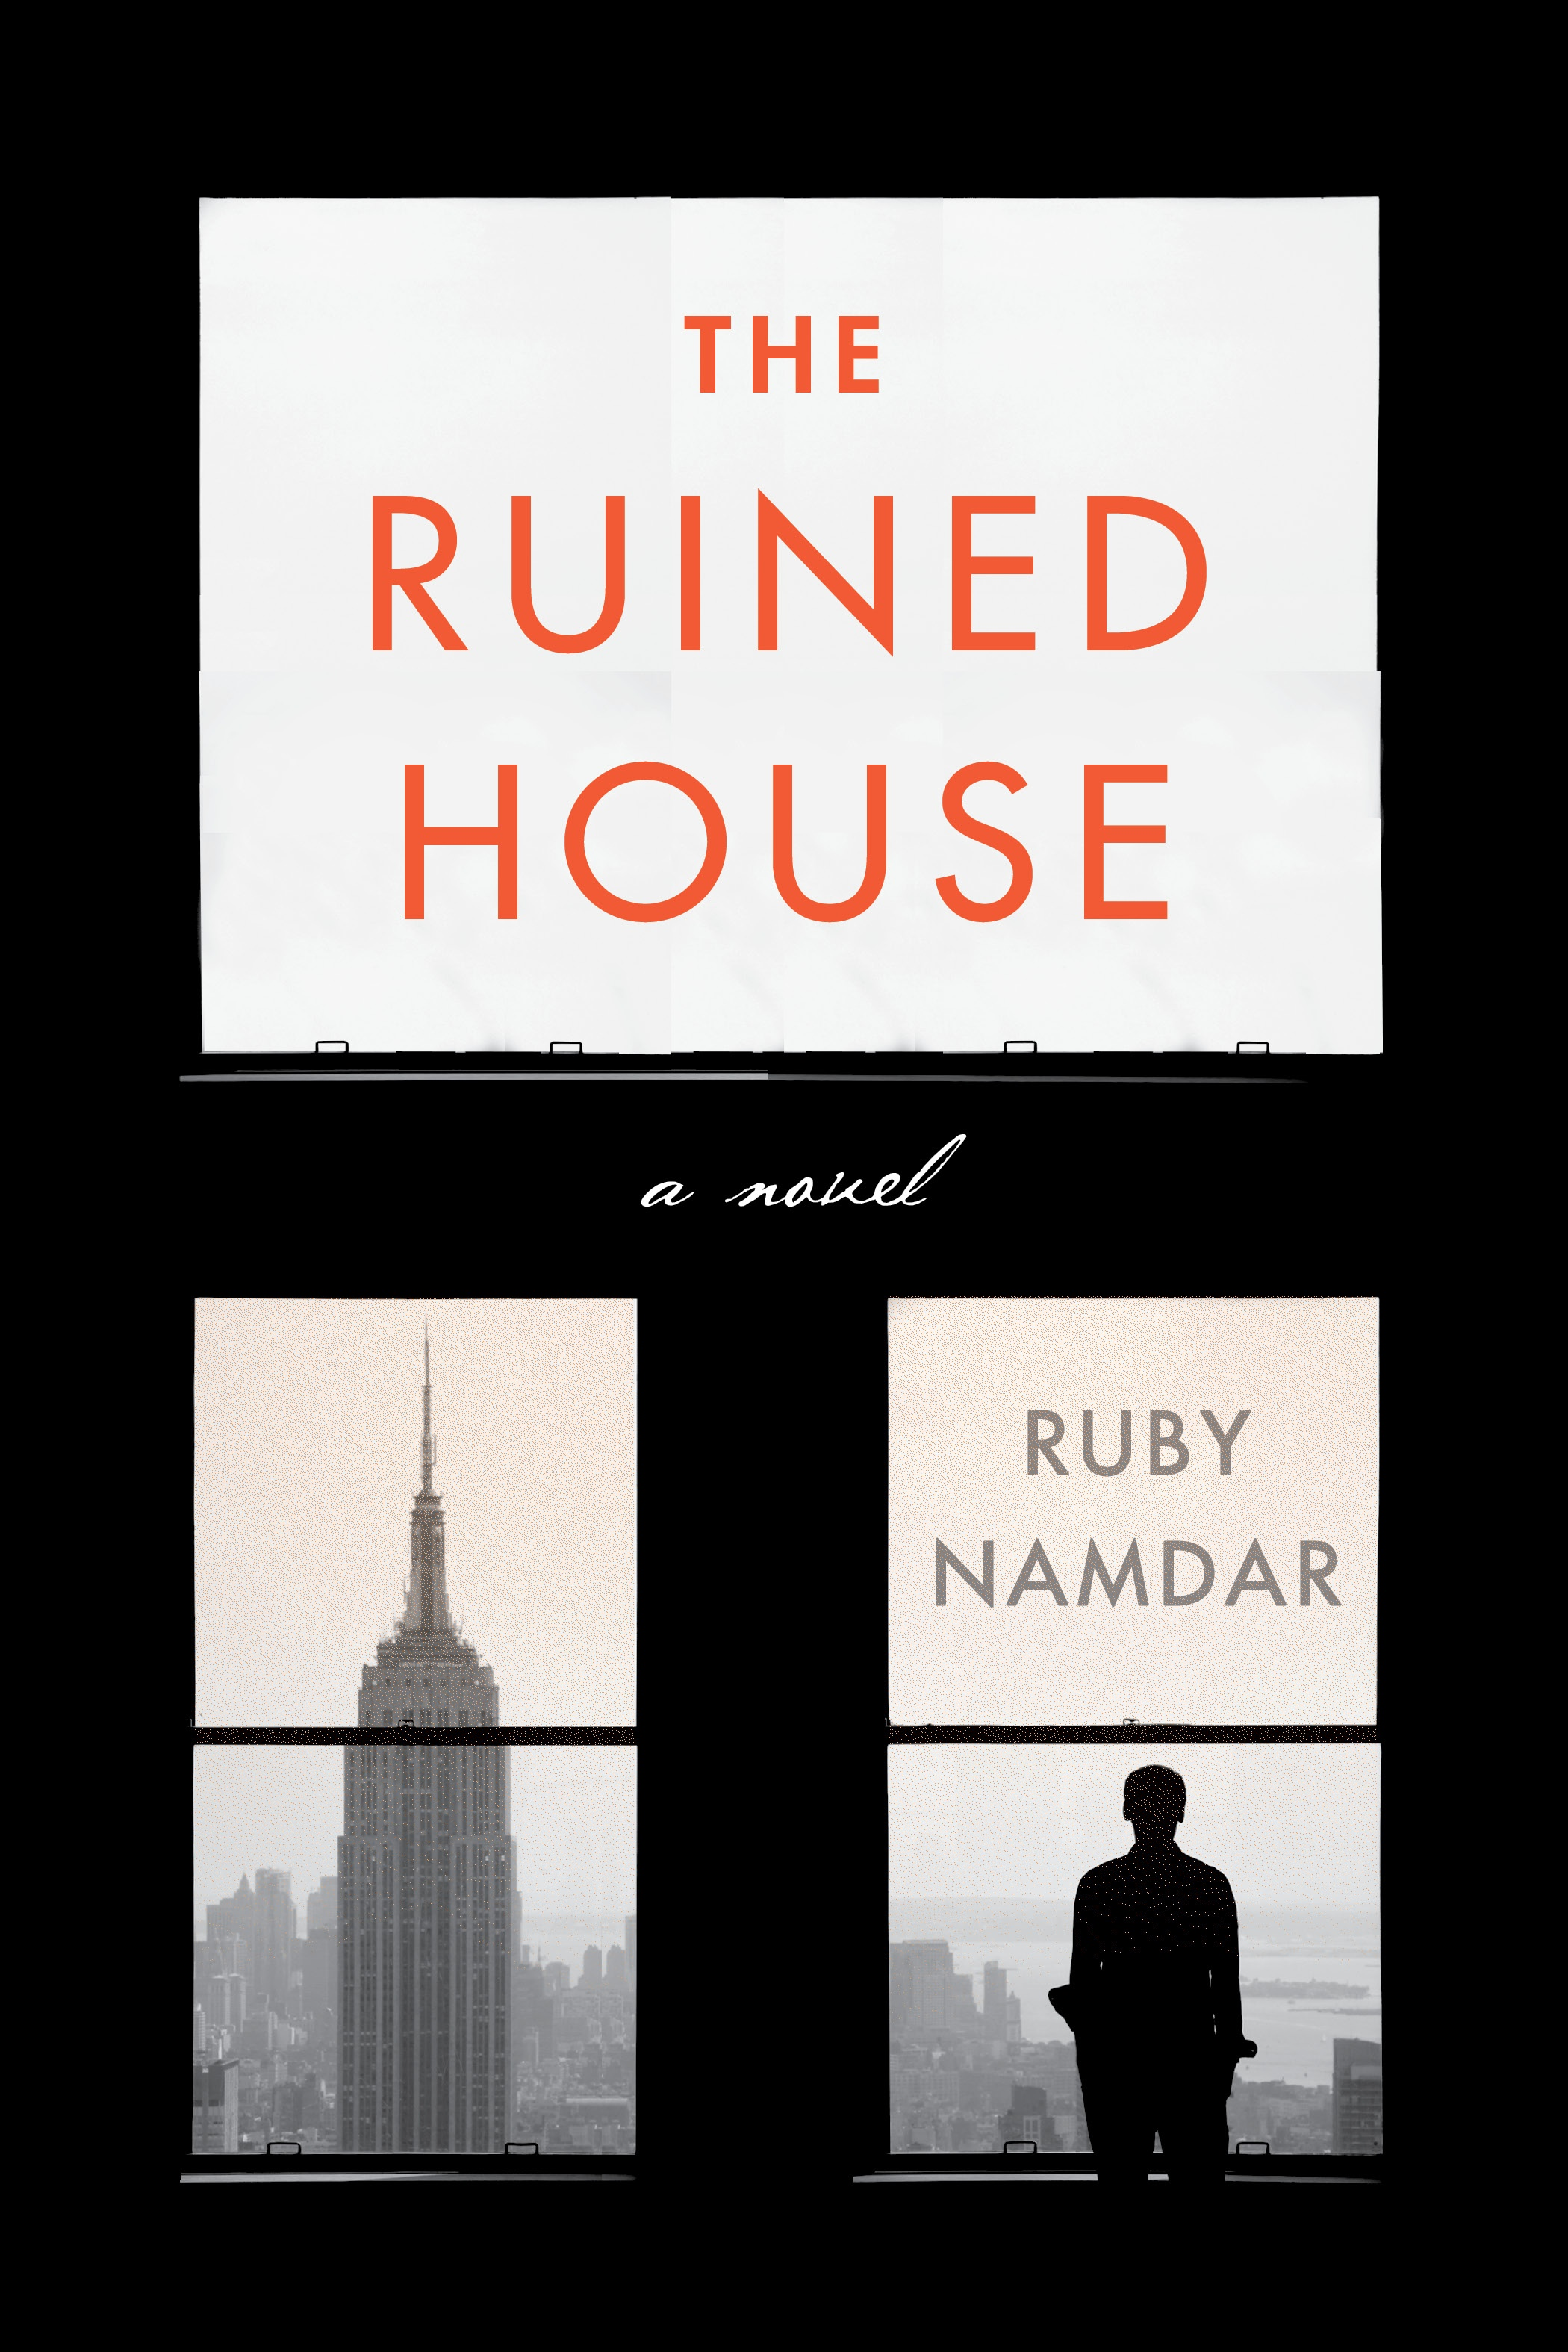 The-Ruined-House-Book-Jacket